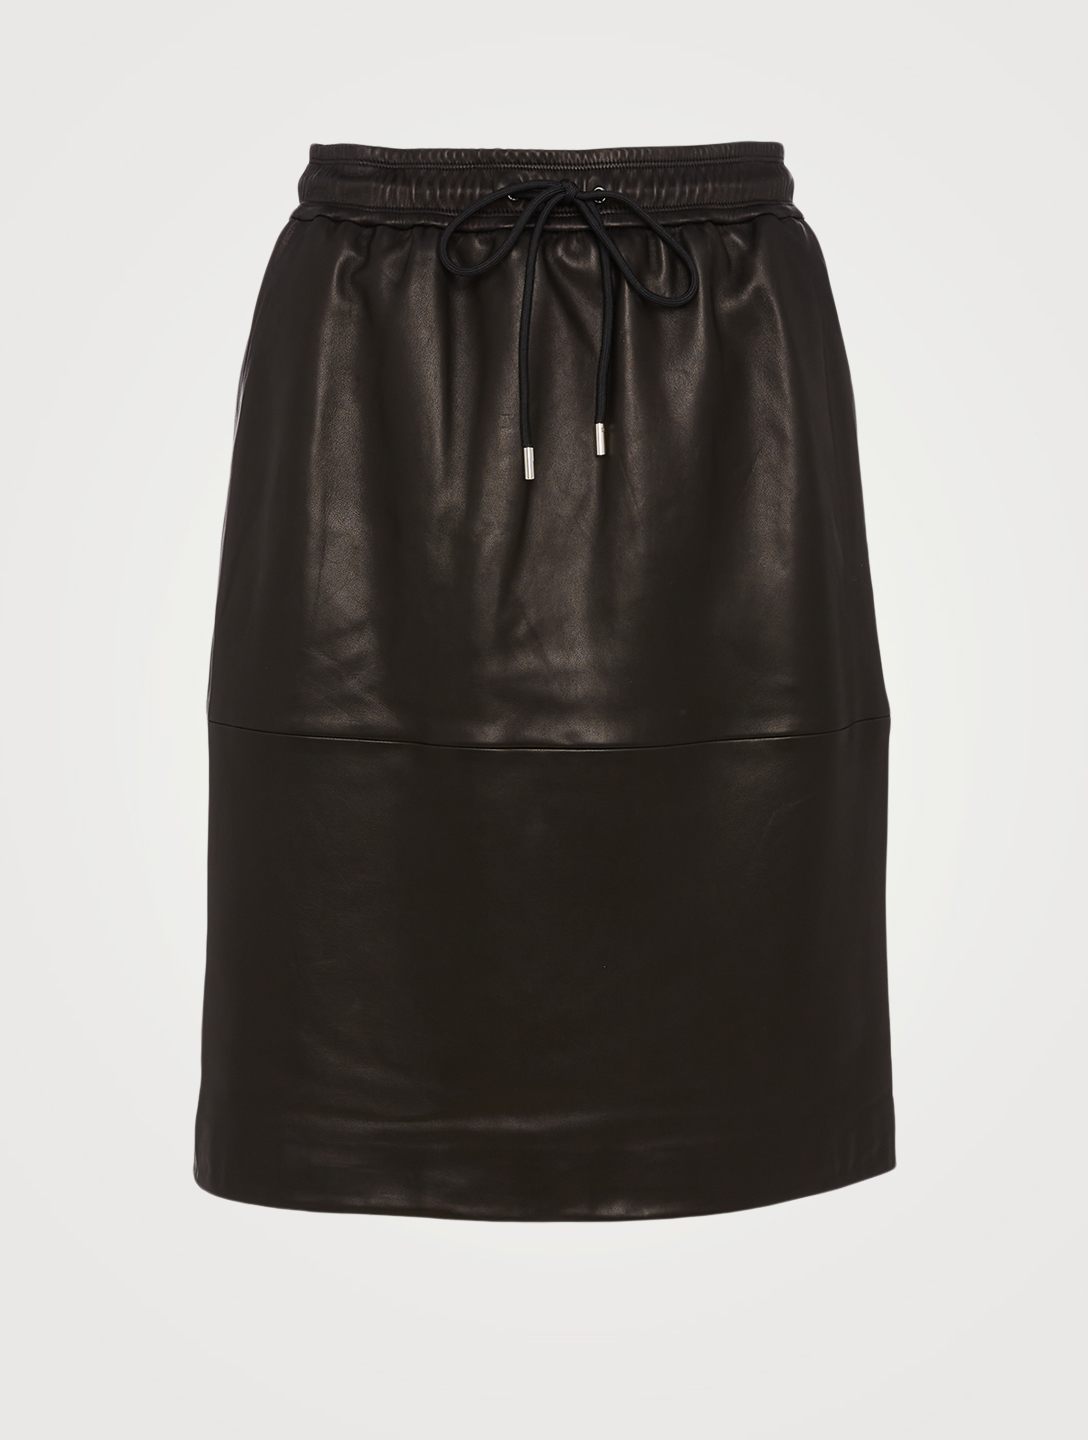 THEORY Leather Drawstring Skirt Women's Black